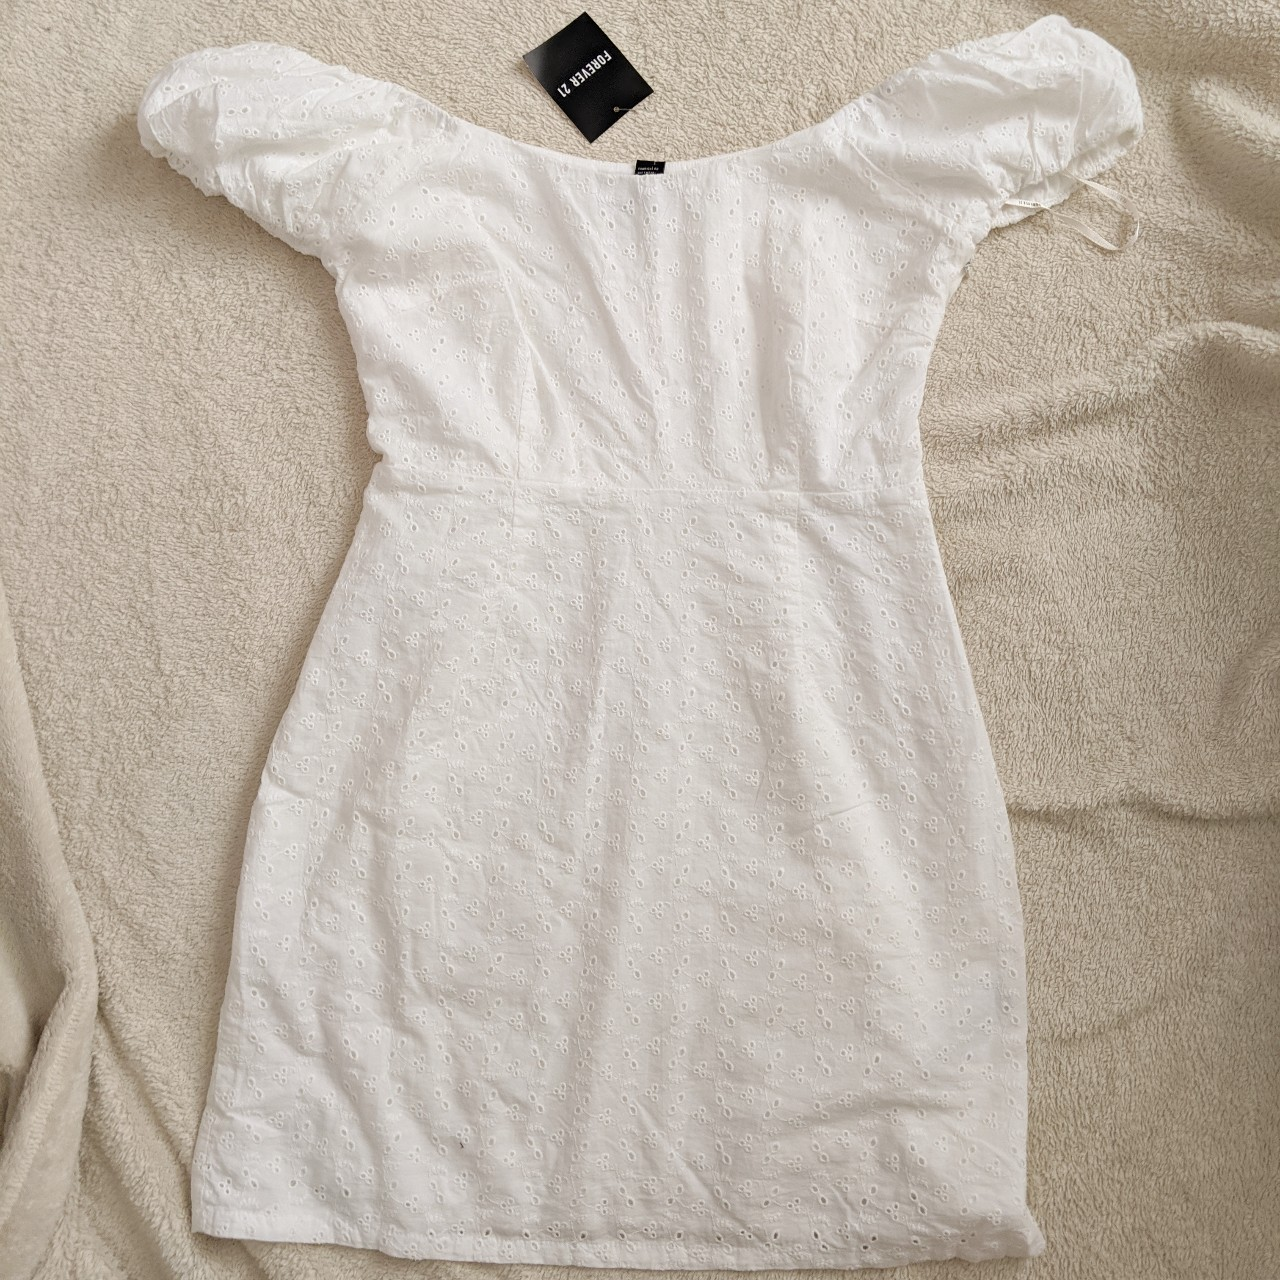 Really cute vintage looking brand new with tag forever